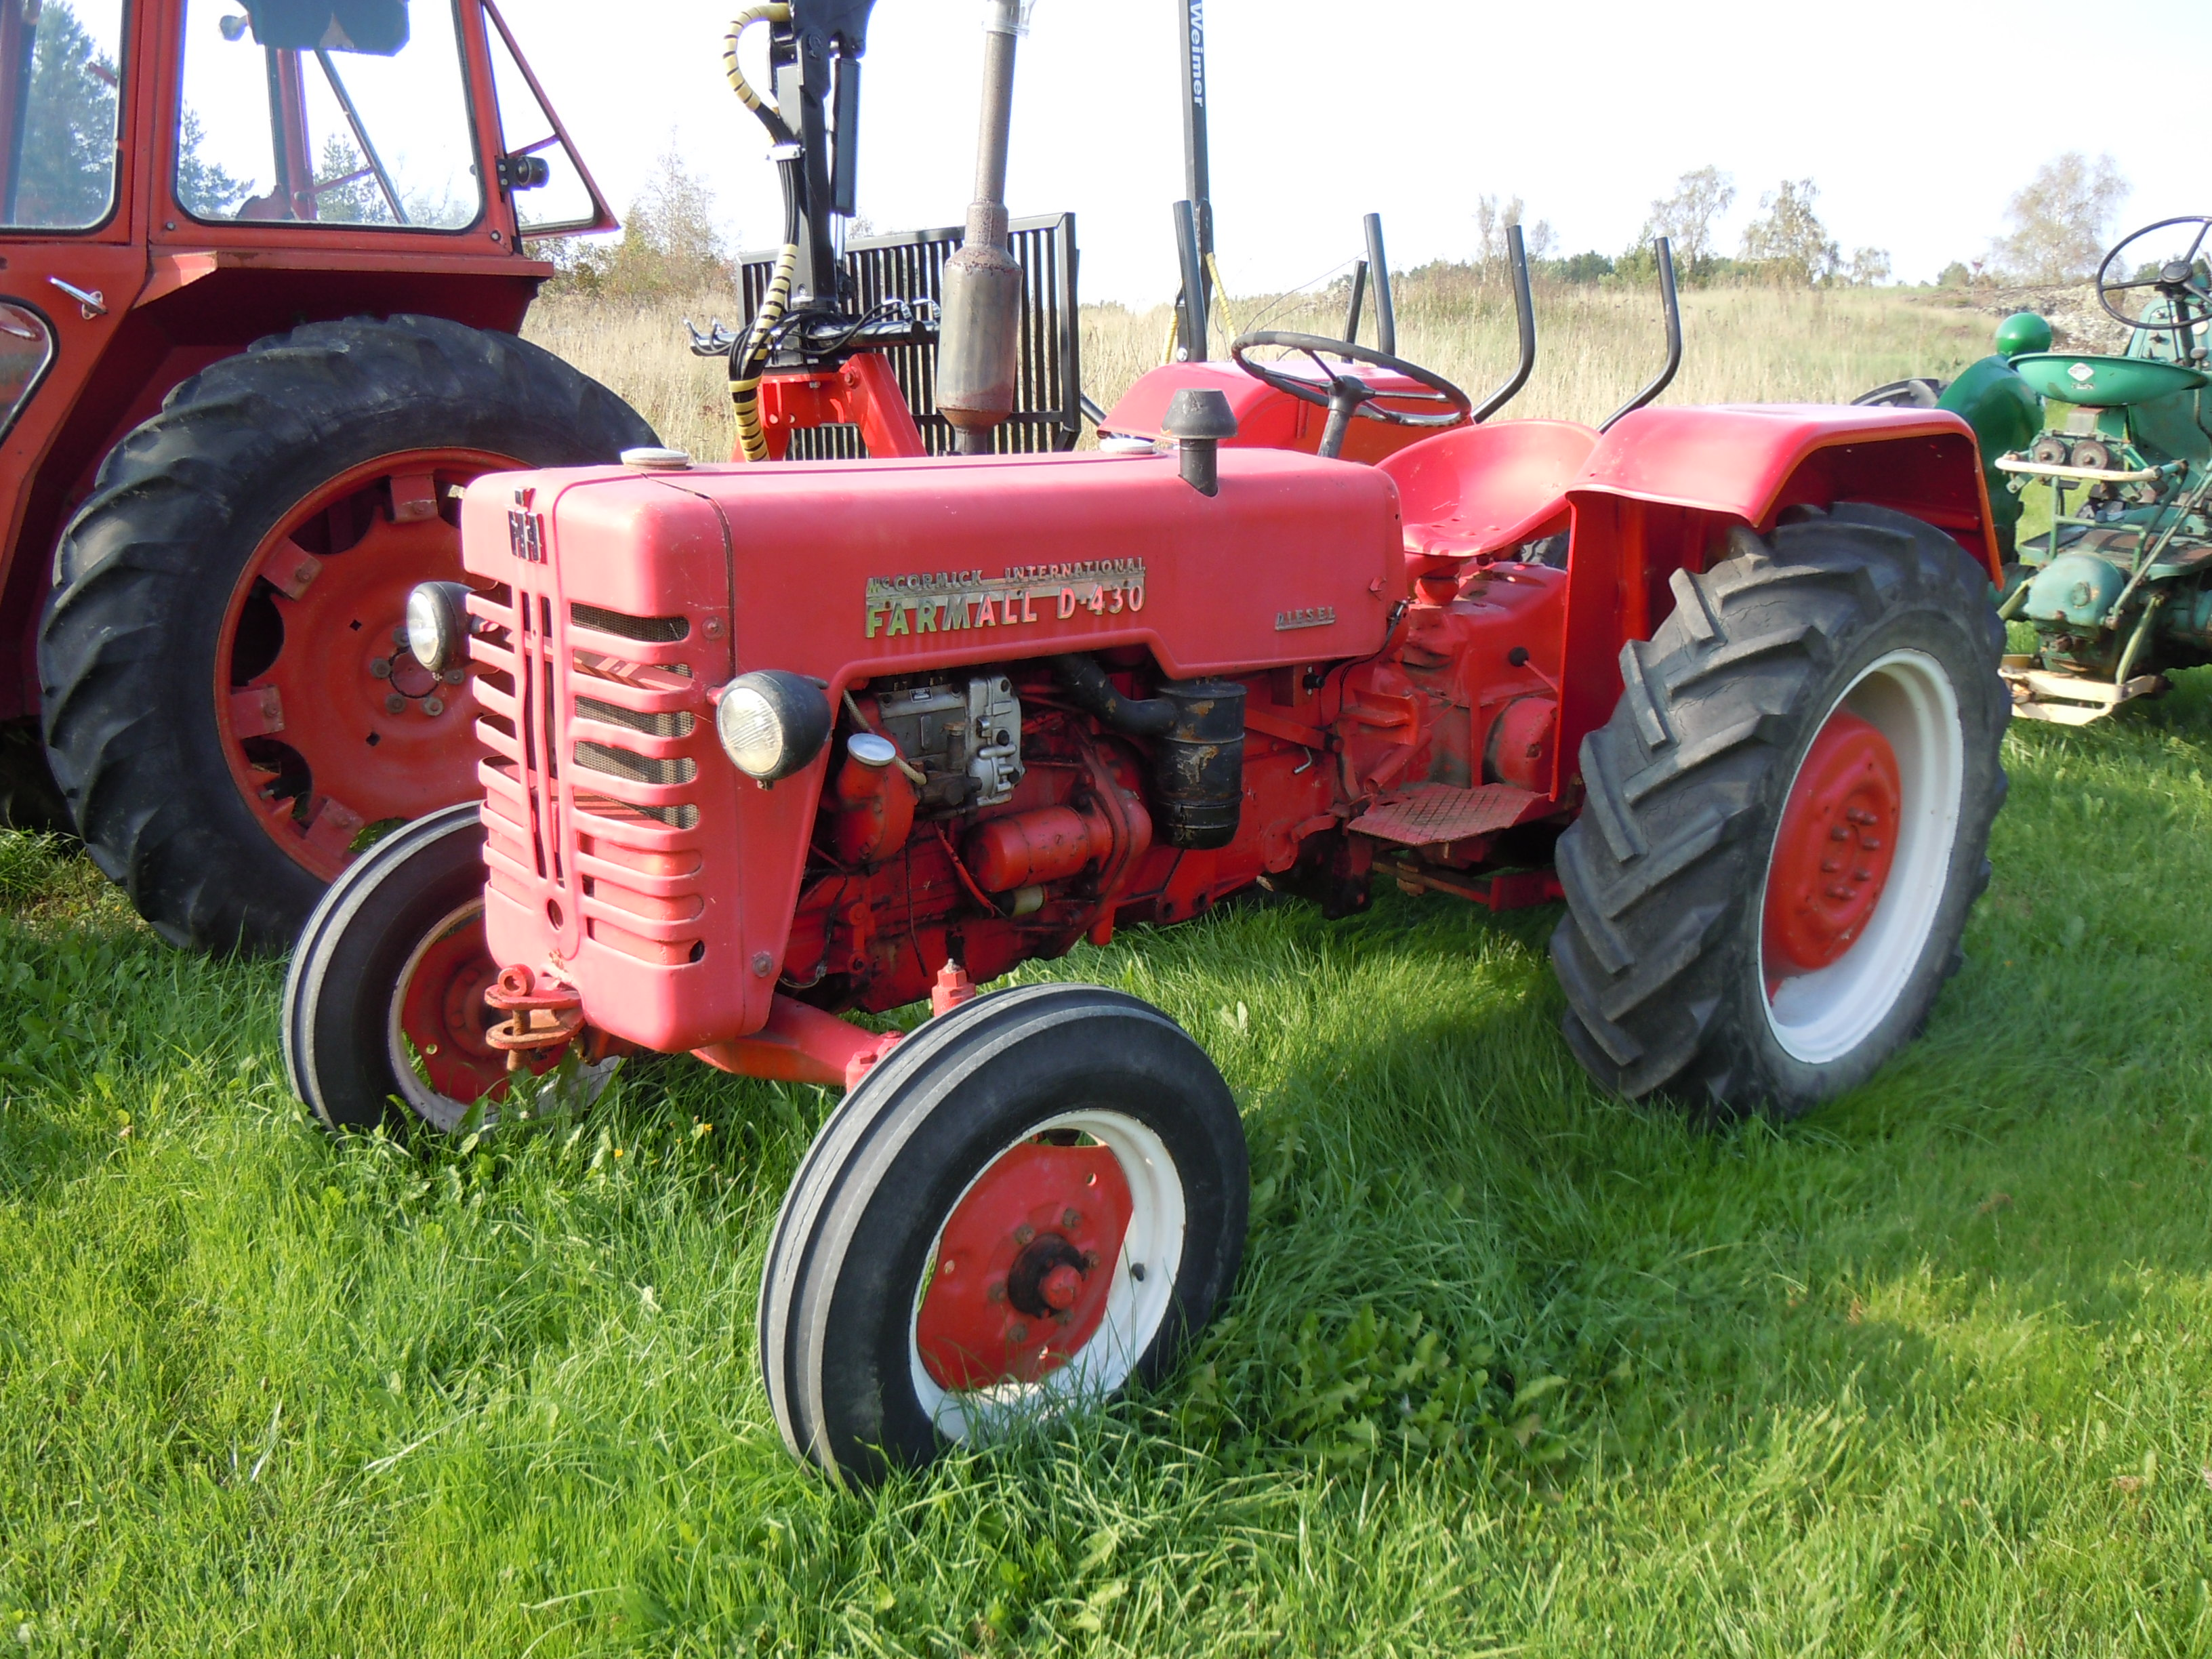 File:Farmall D-430 tractor.jpg - Wikimedia Commons